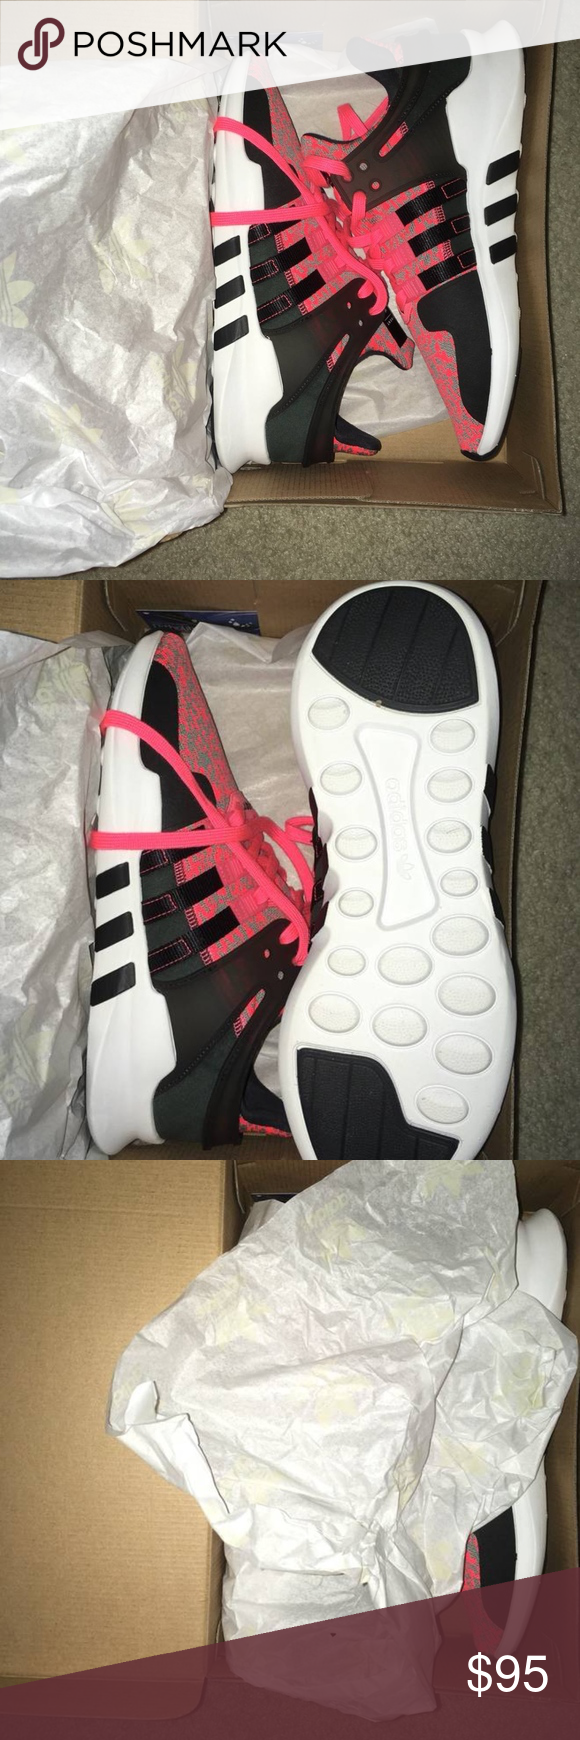 9c40c404e35a Adidas EQT support pink turbo Adidas EQT support pink turbo sneakers brand  new in box size 10 adidas Shoes Sneakers